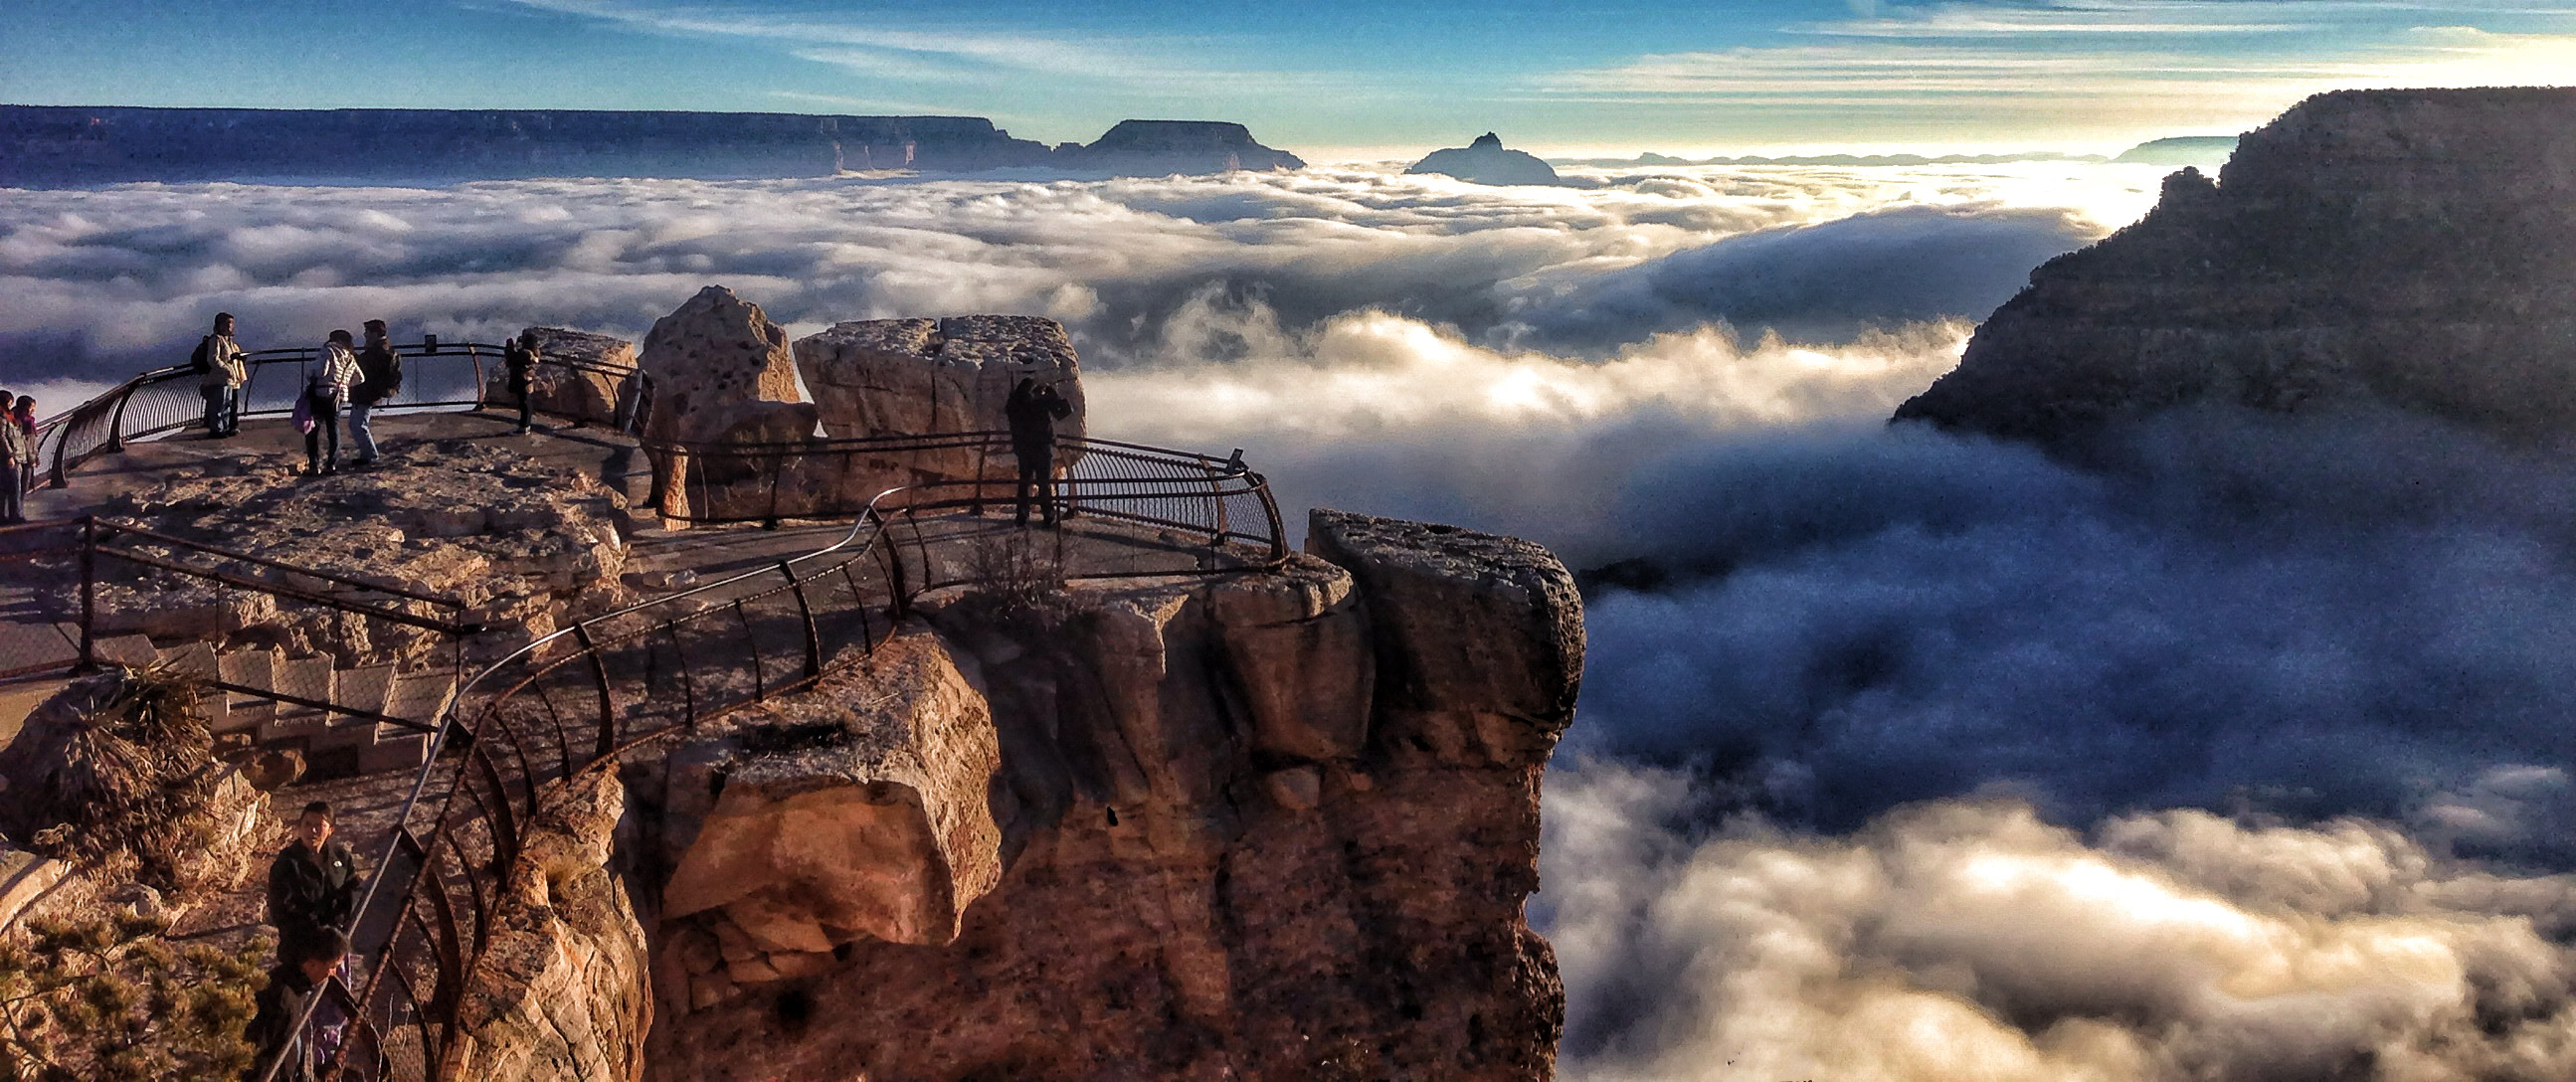 Grand Canyon National Park Cloud Inversion: November 29, 2013